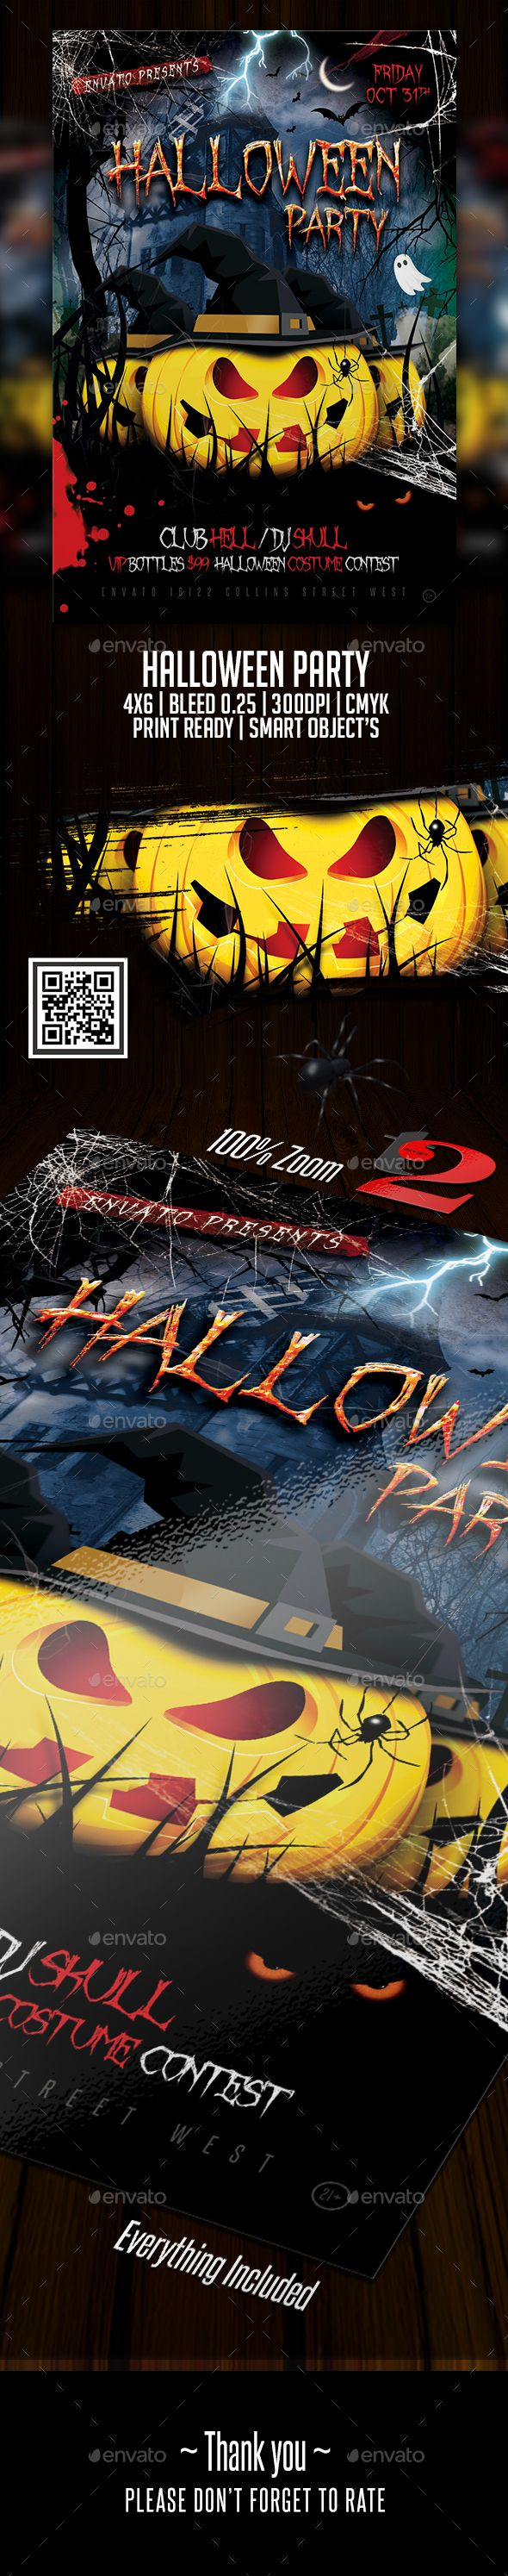 #Halloween Party #Flyer Template - Holidays Events